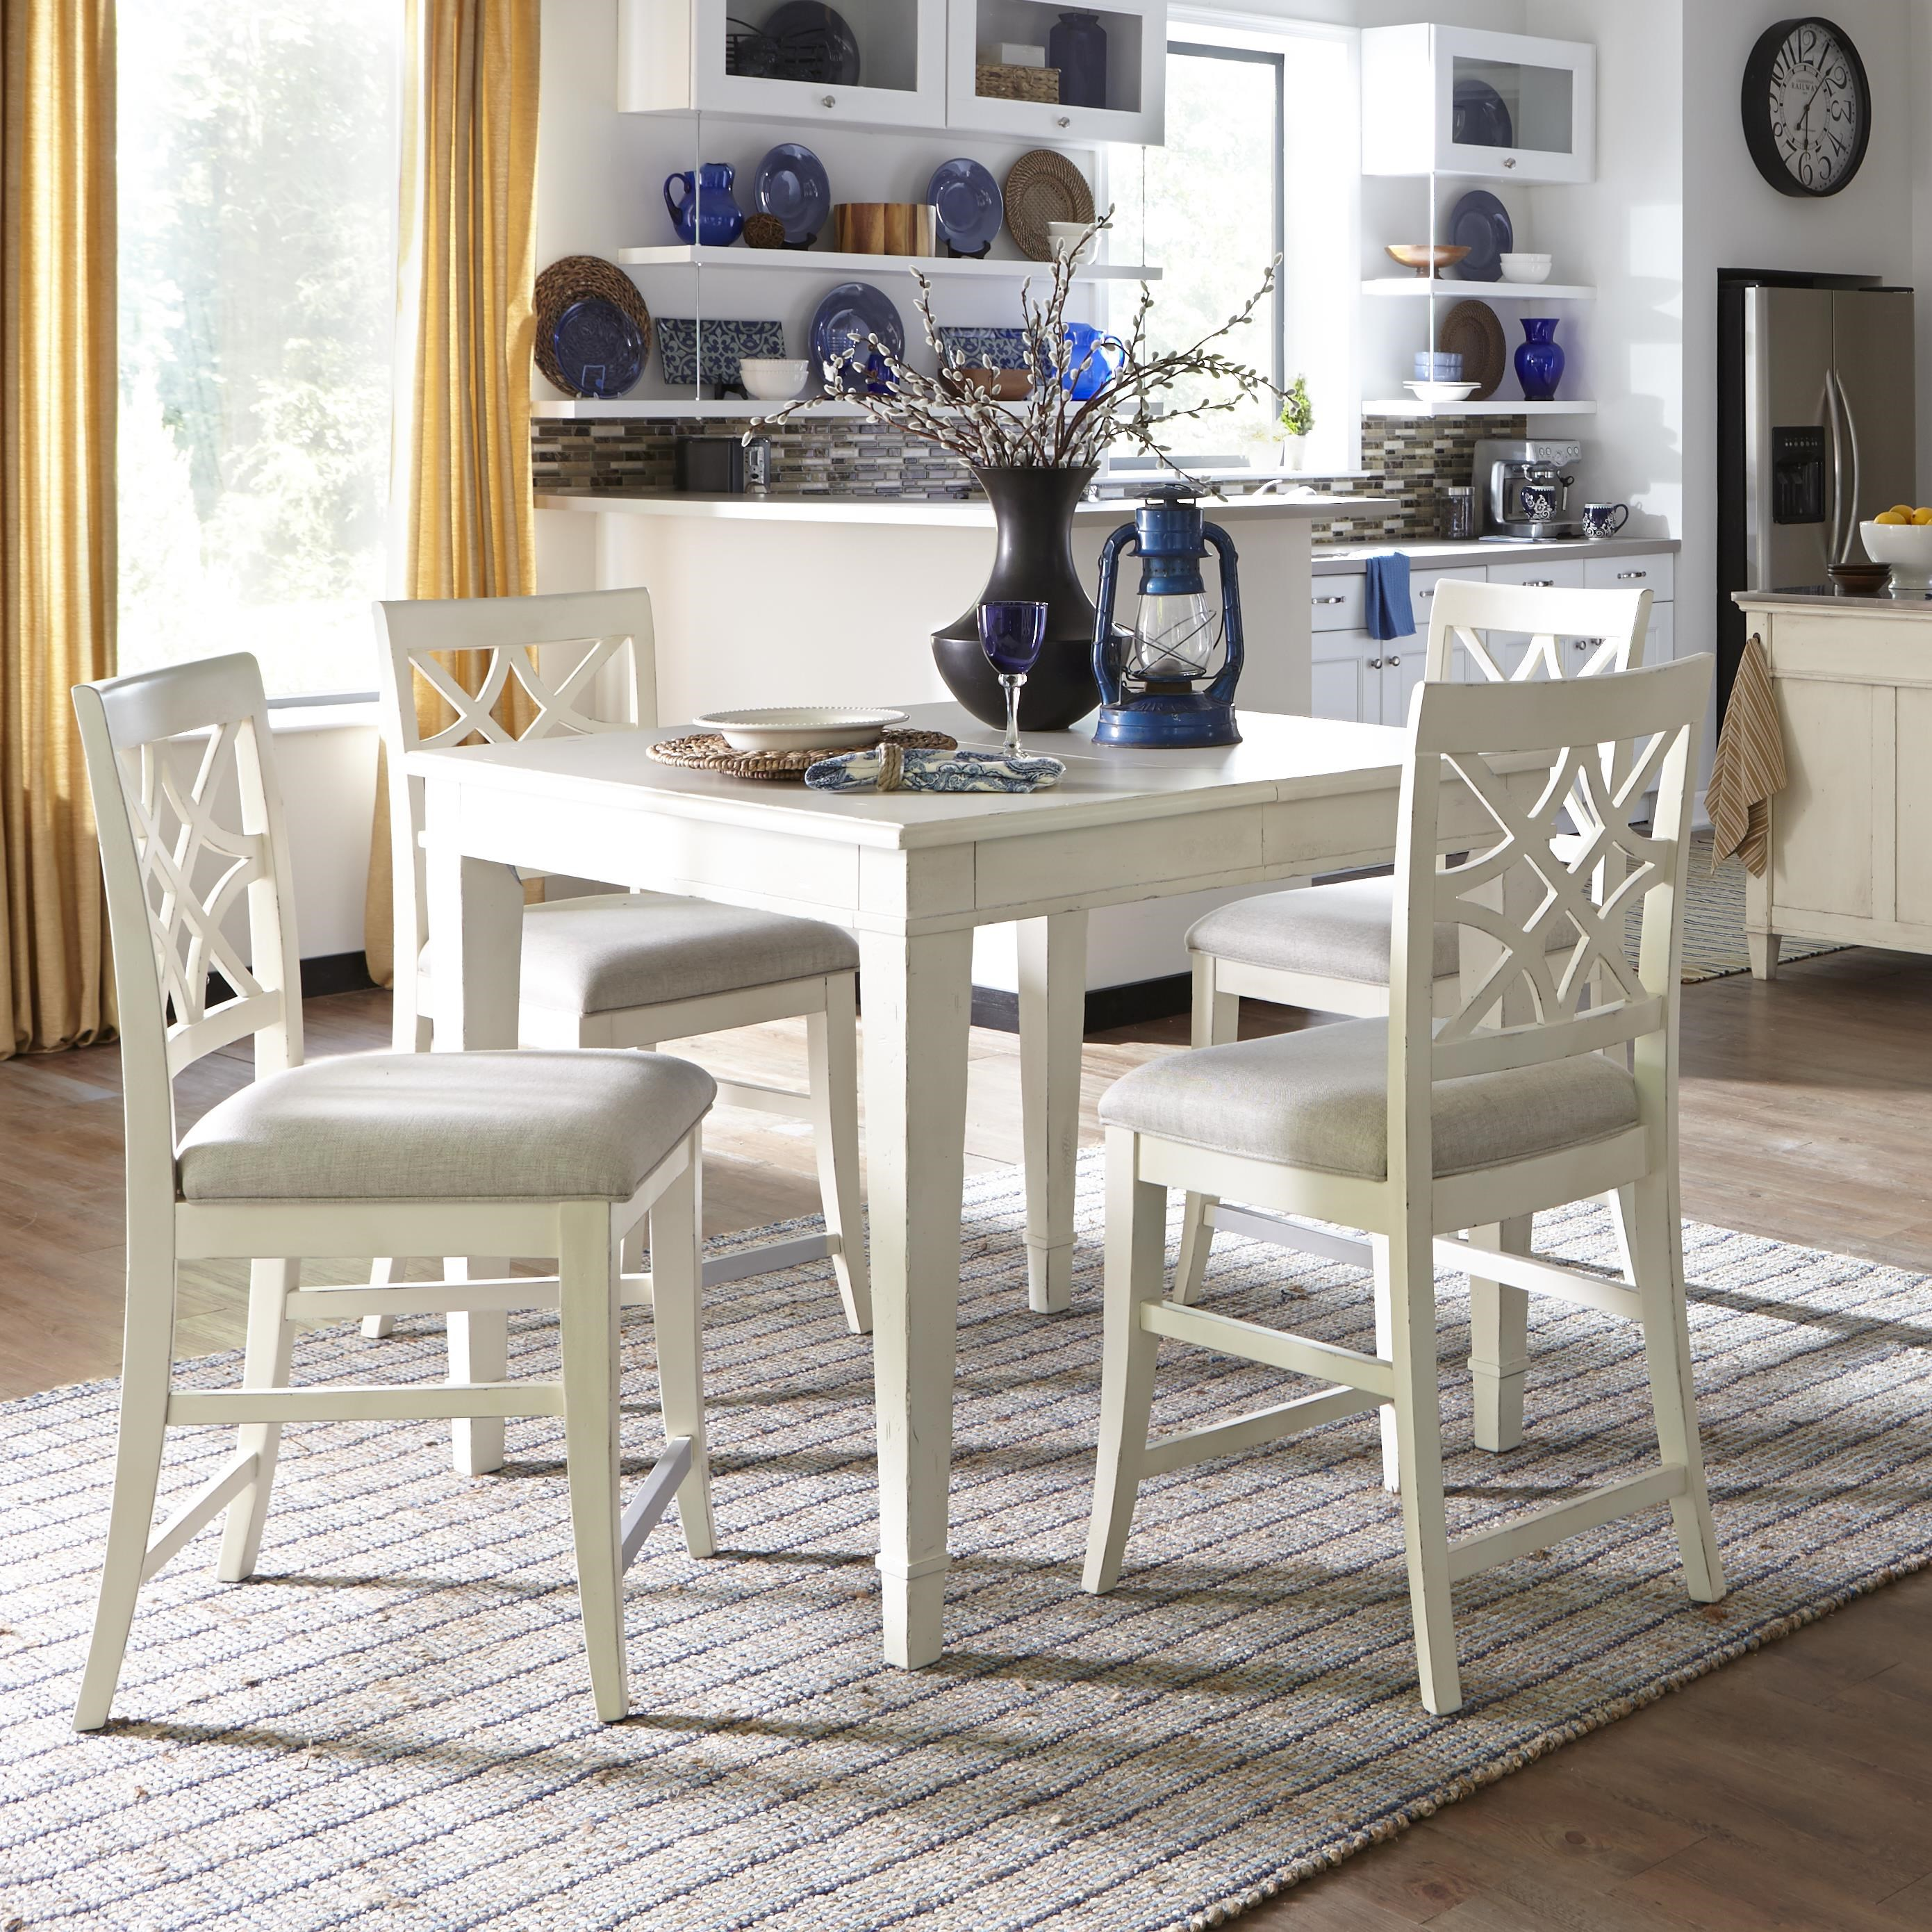 Beautiful Trisha Yearwood Home Collection By Klaussner Trisha Yearwood Home 5 Piece  Counter Height Table And Chairs